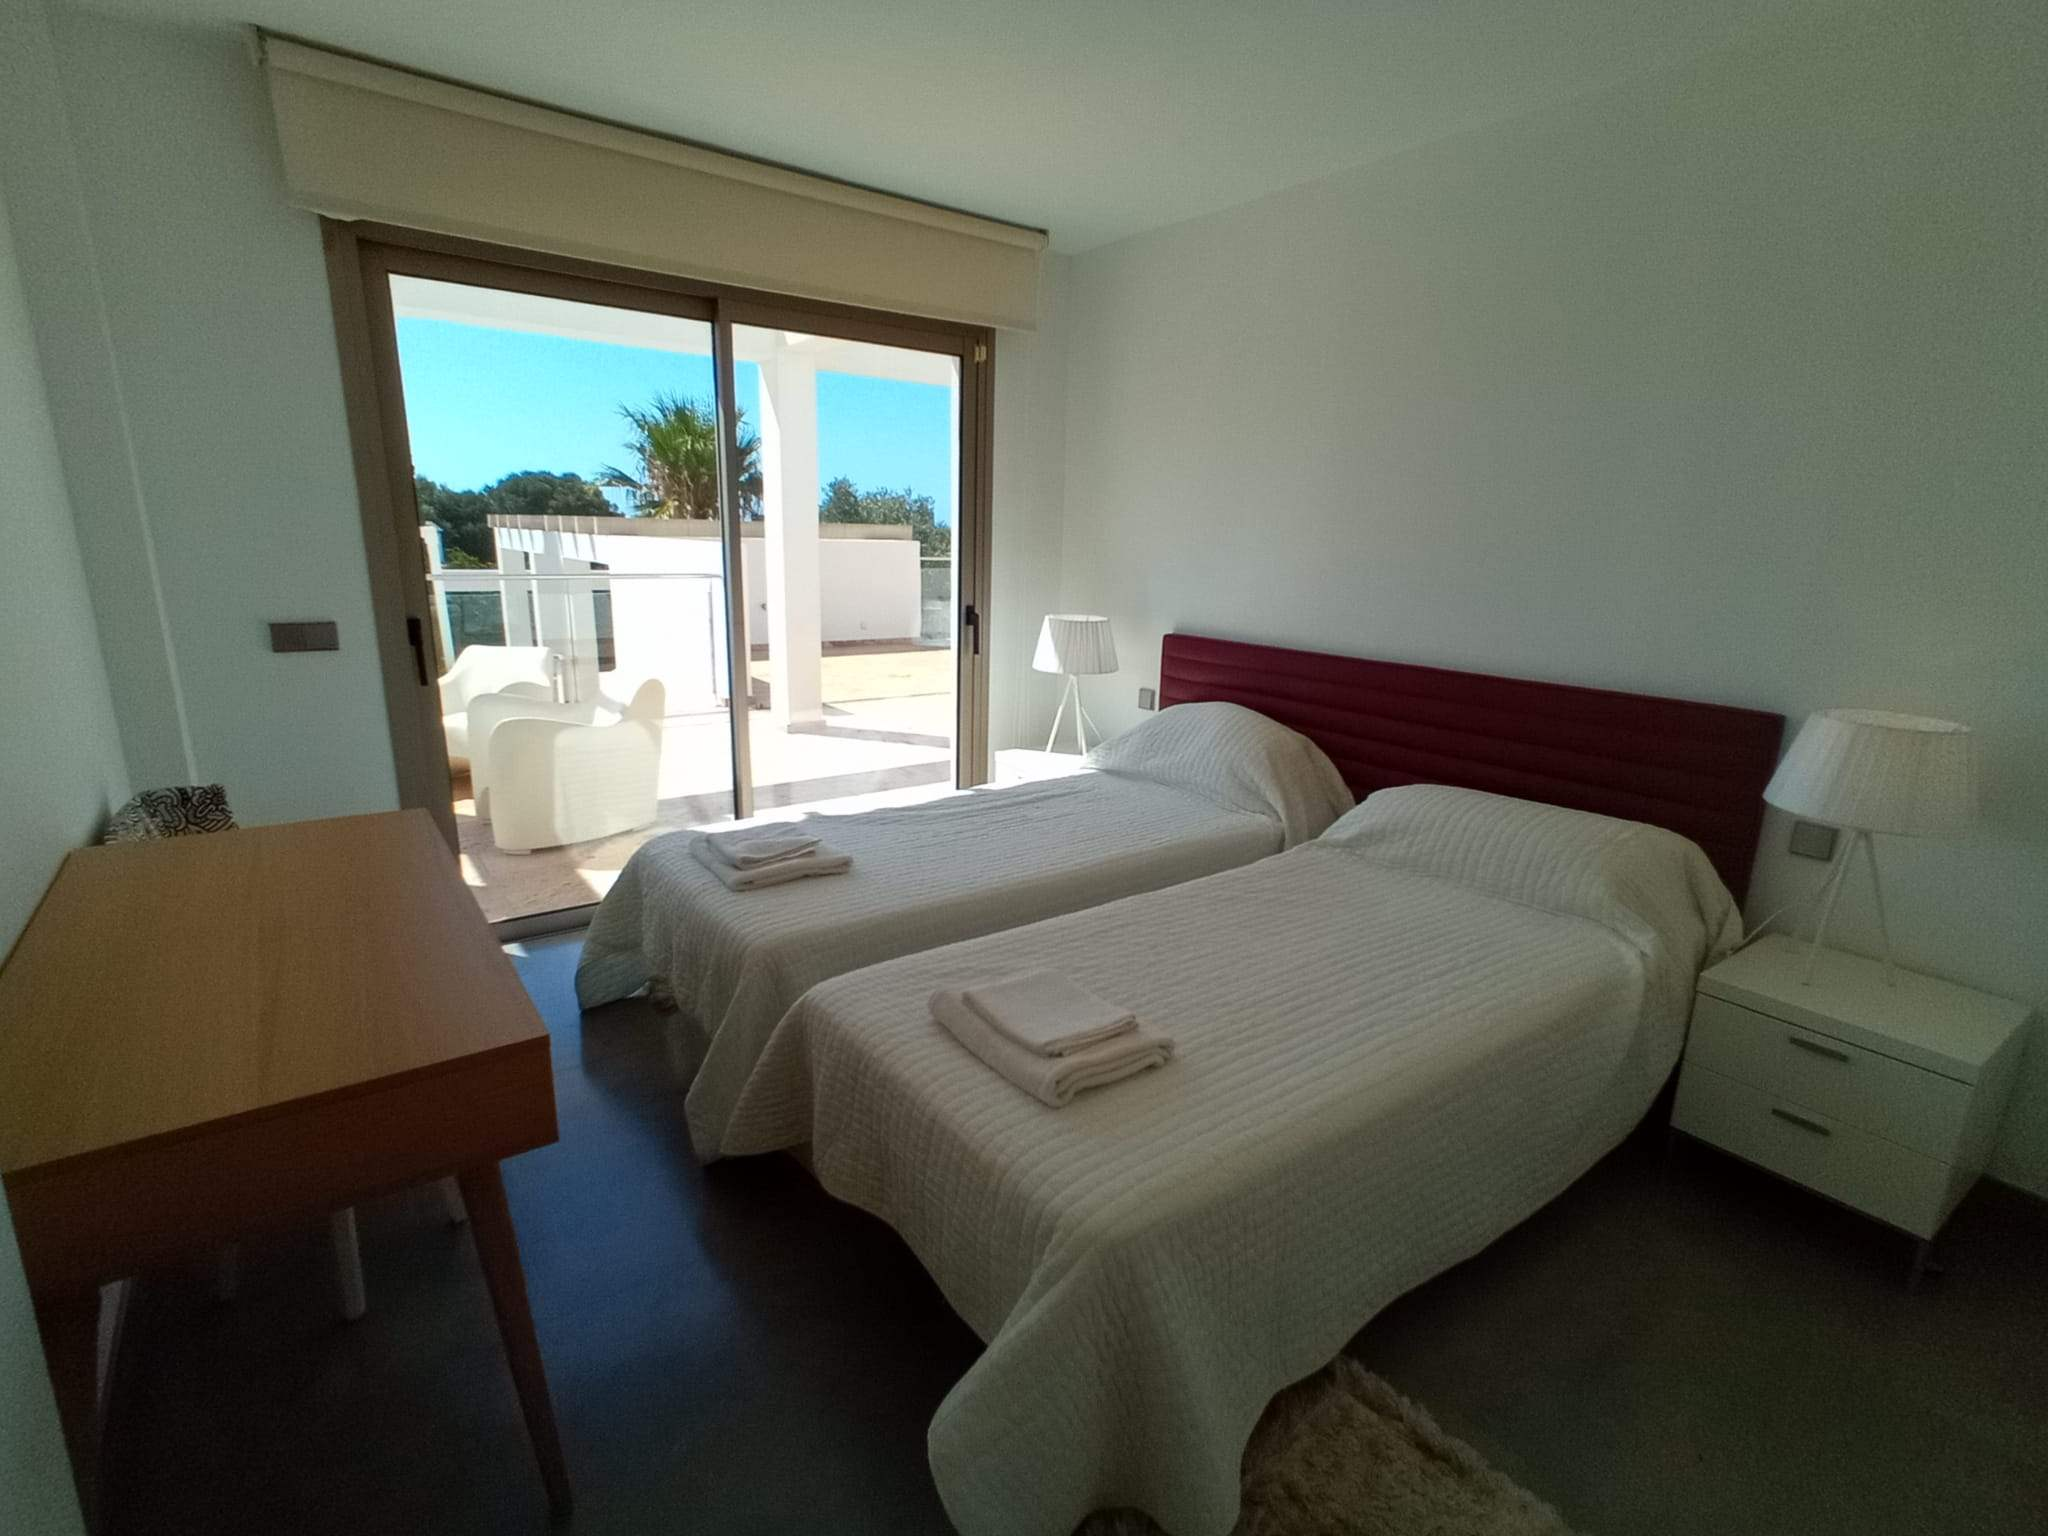 Casa Pitiusa, 4 Bedroom rate, 4 bedroom villa in Mahon, San Luis & South East, Menorca Photo #18